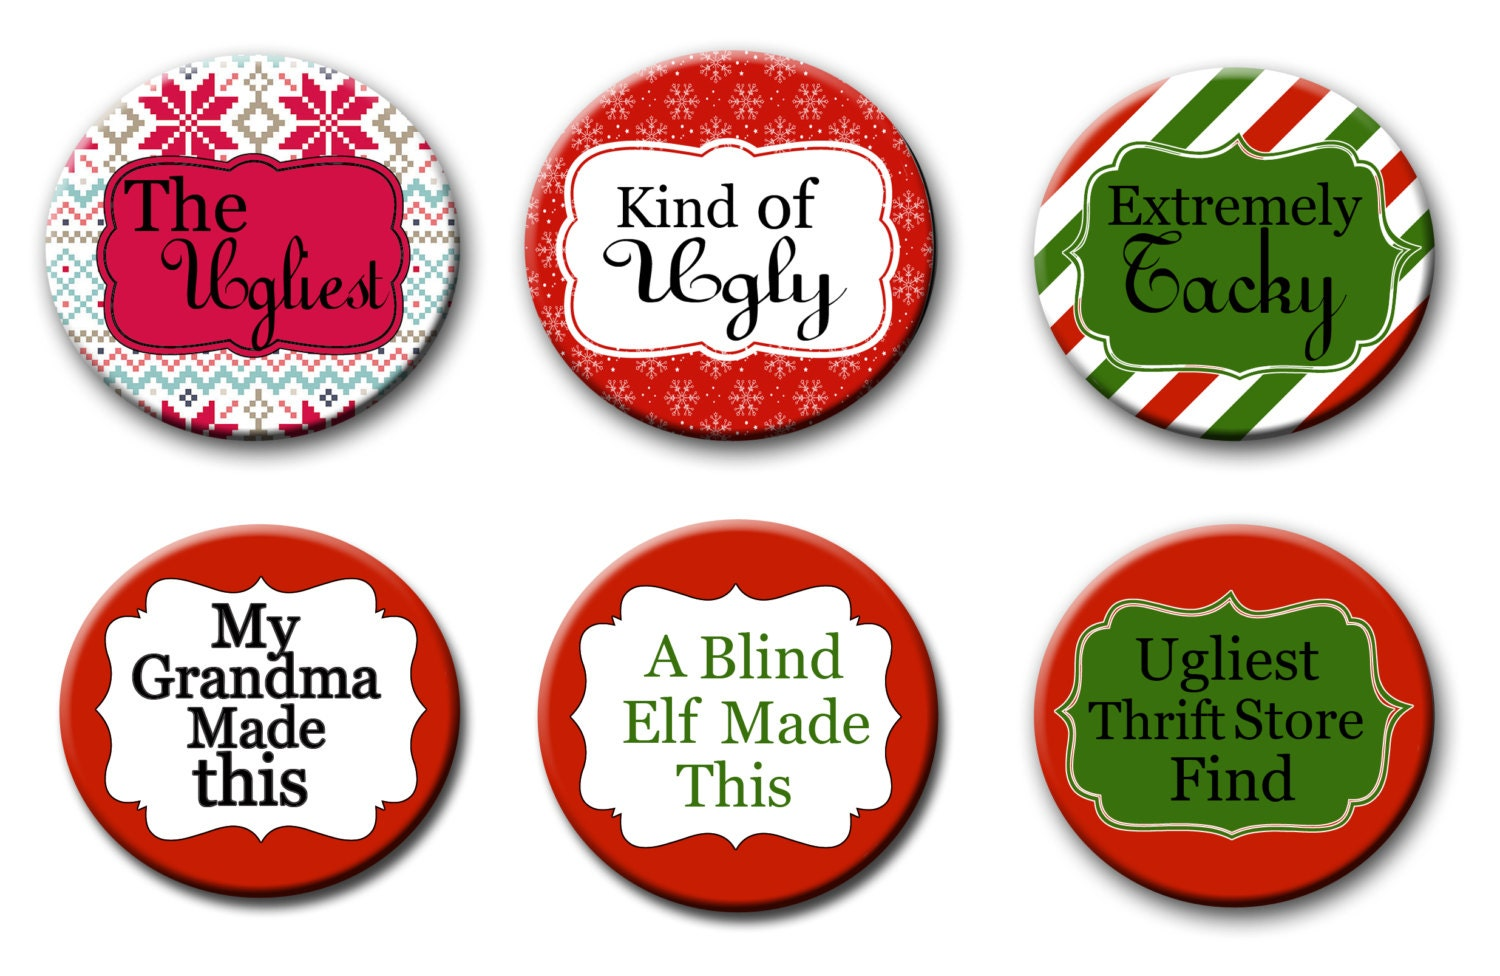 Charming Christmas Party Award Ideas Part - 11: Ugly Christmas Sweater Party Award 2.25 Inch Pinback Buttons Pins Badges Christmas  Party Favors